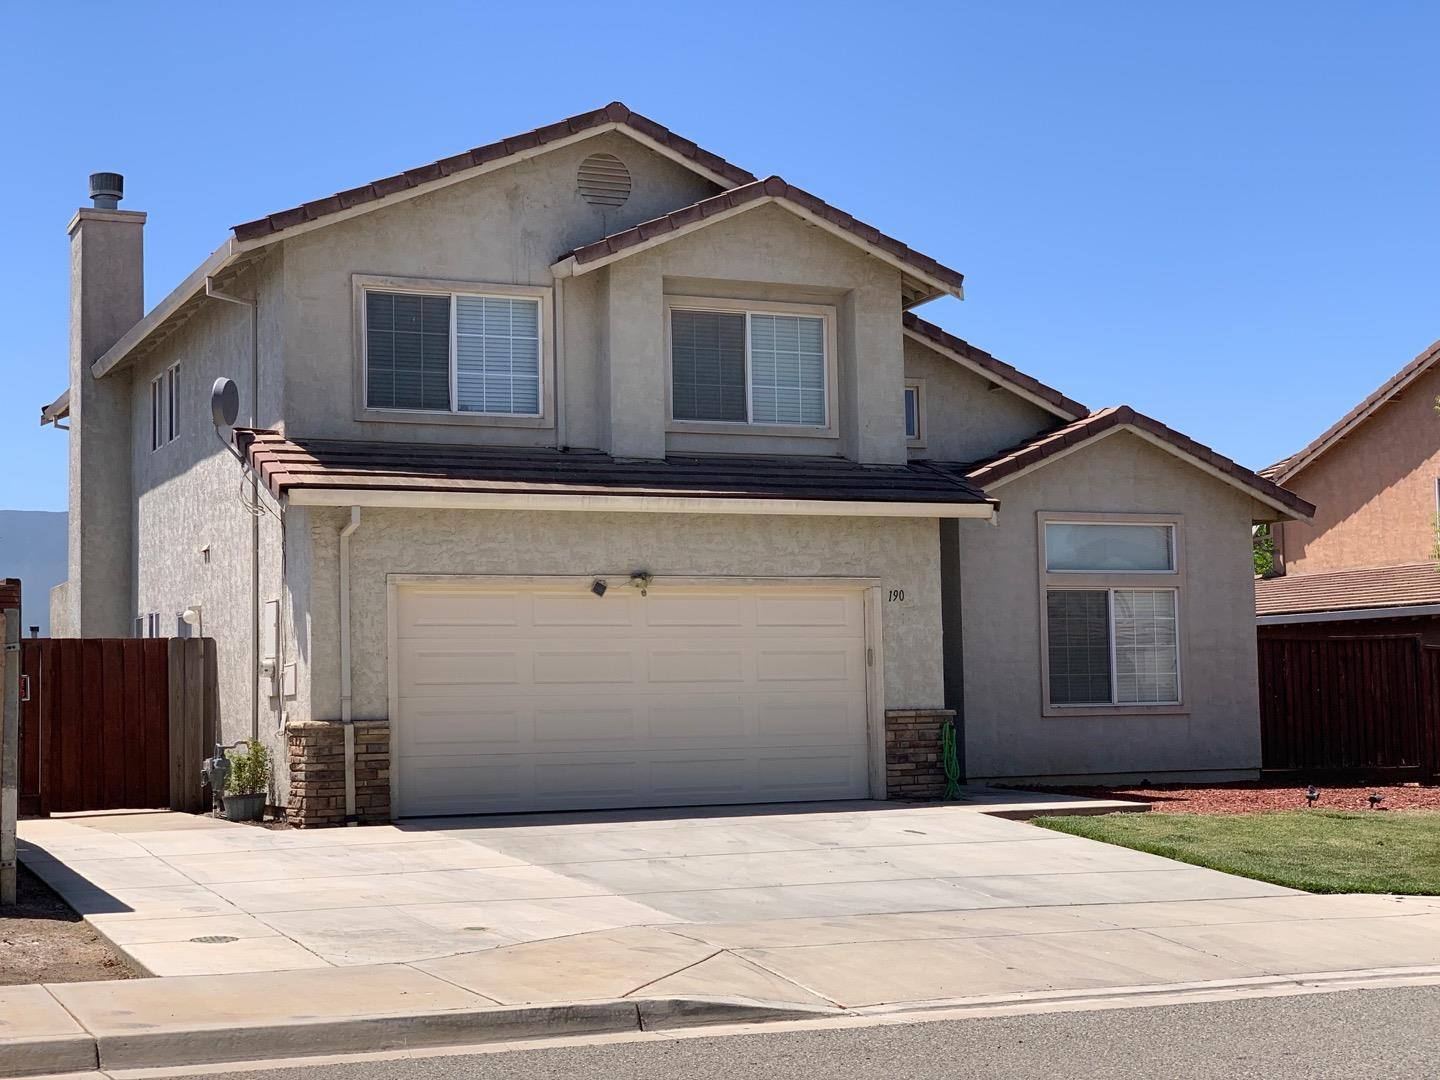 Detail Gallery Image 1 of 1 For 190 Head St, Soledad, CA, 93960 - 4 Beds | 2/1 Baths